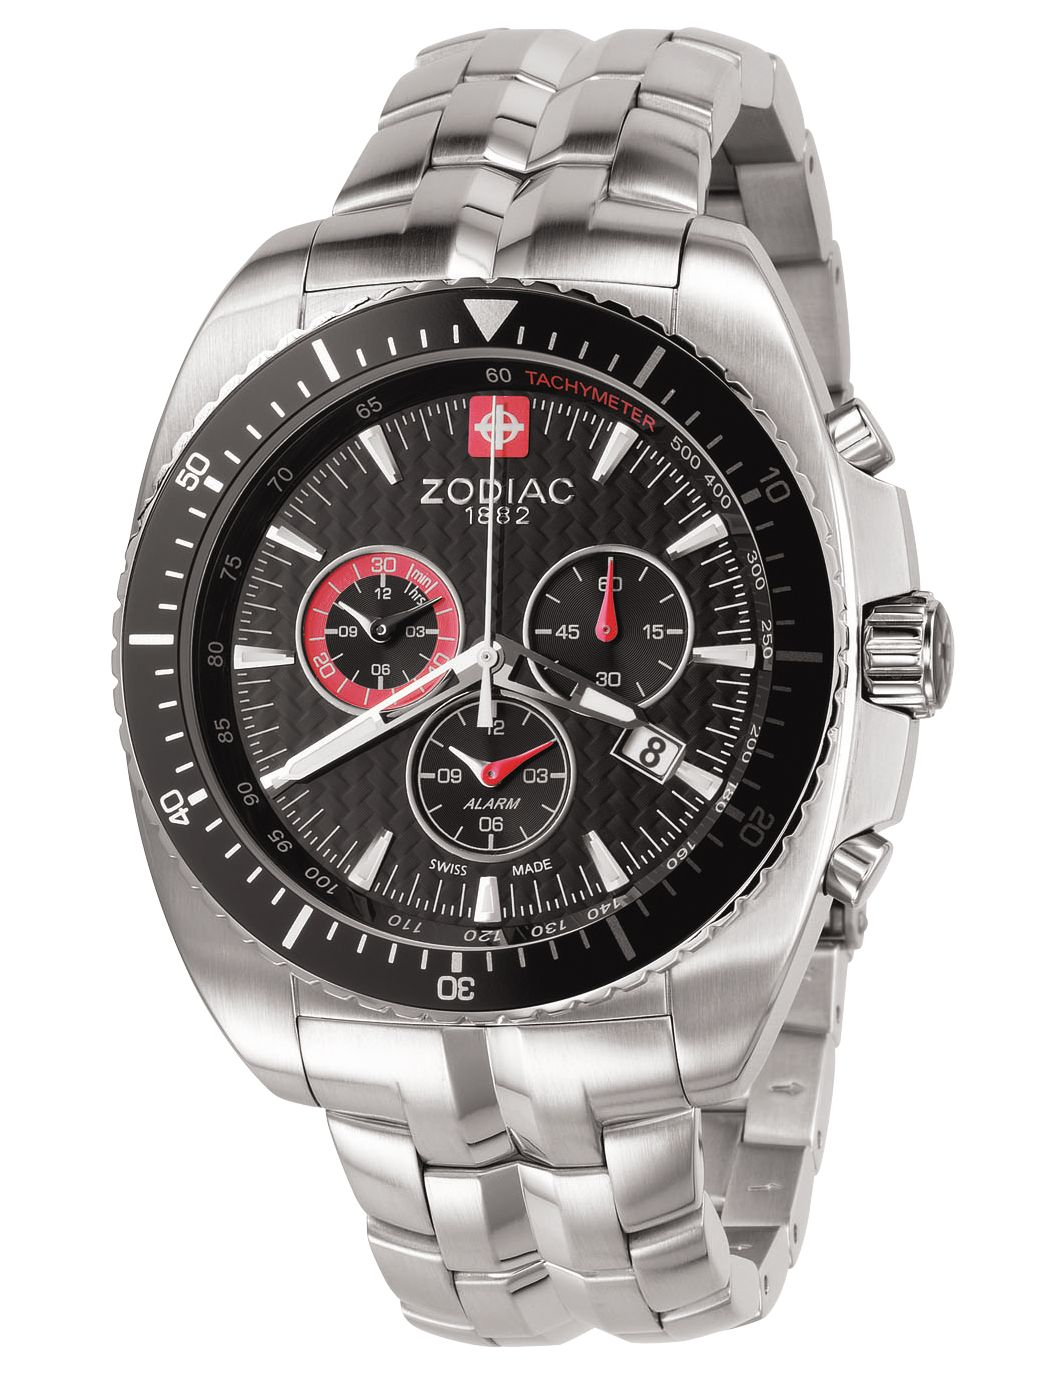 Zodiac Adventure sport ZO5504 gentlemens watch product image